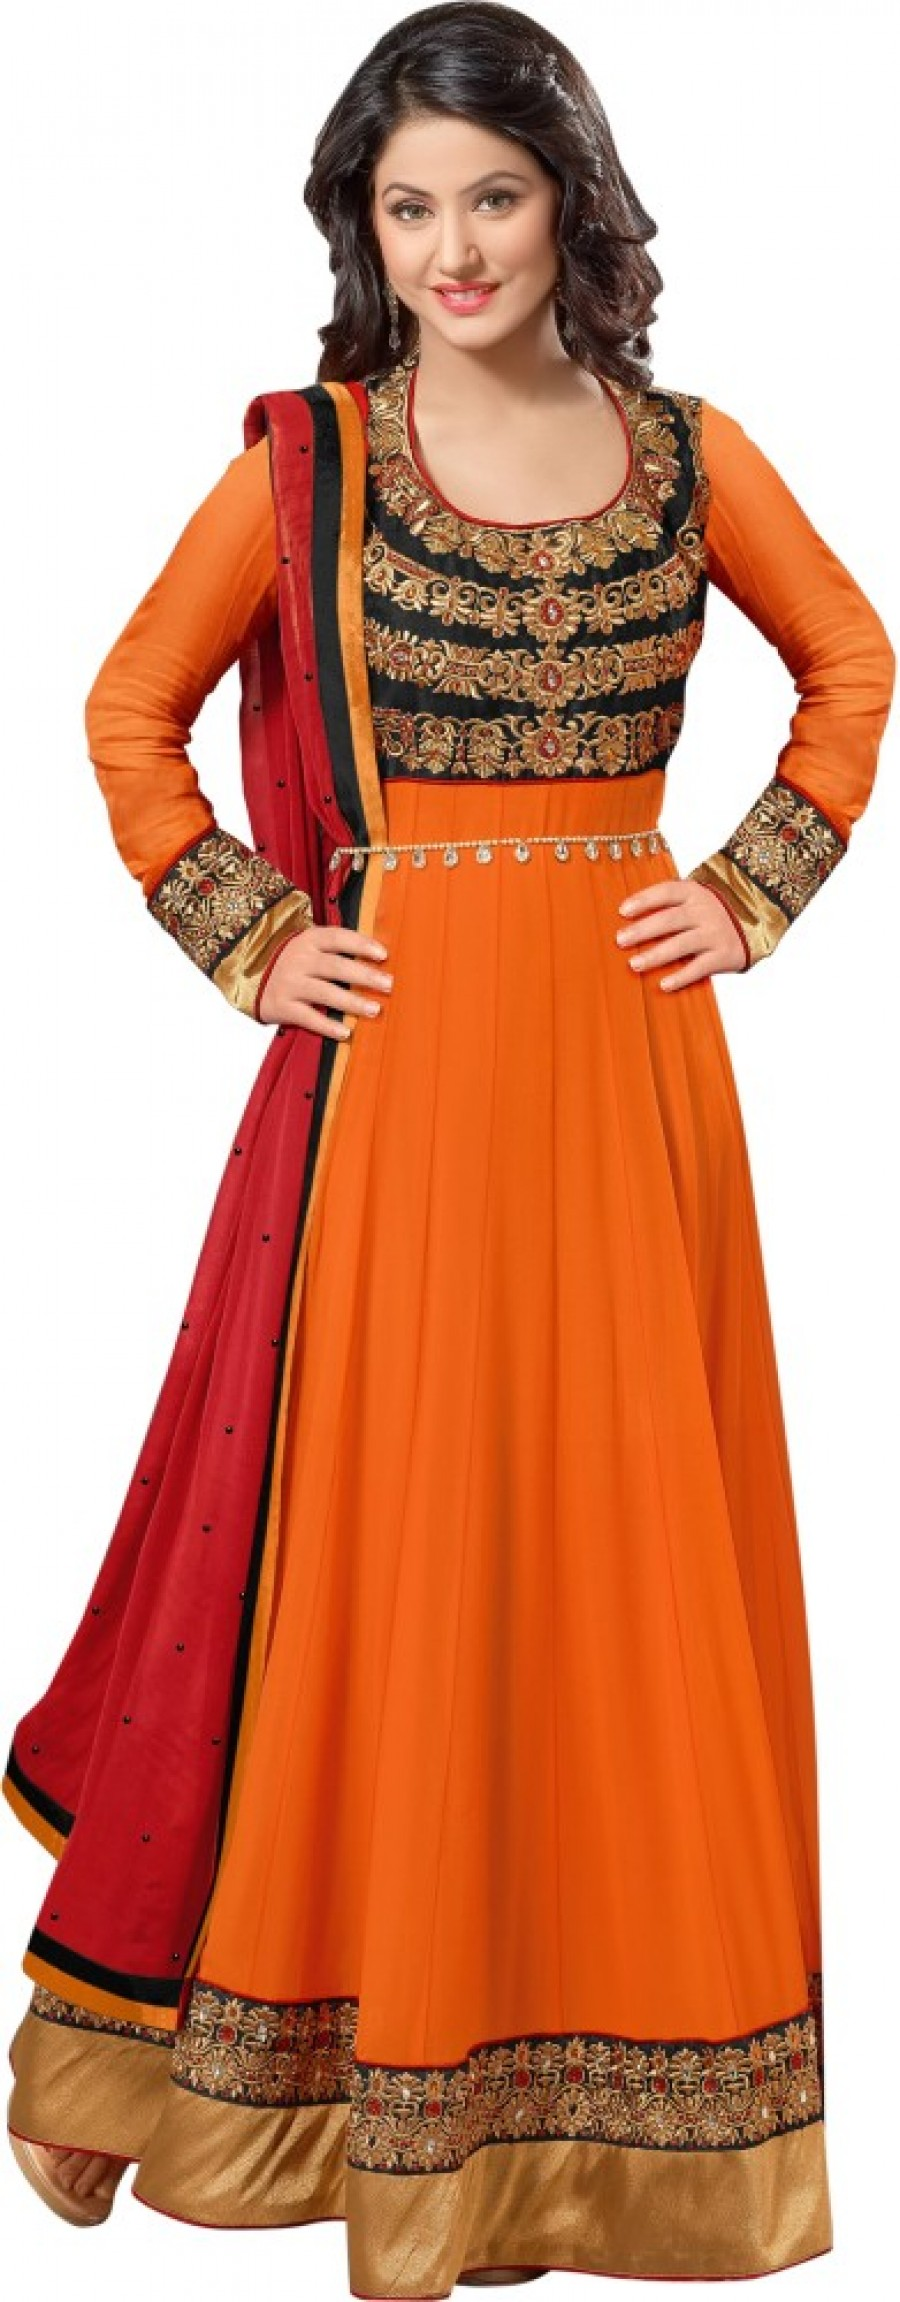 Buy Cutie Pie Chiffon Embroidered Semi-stitched Salwar Suit Dupatta Material Online